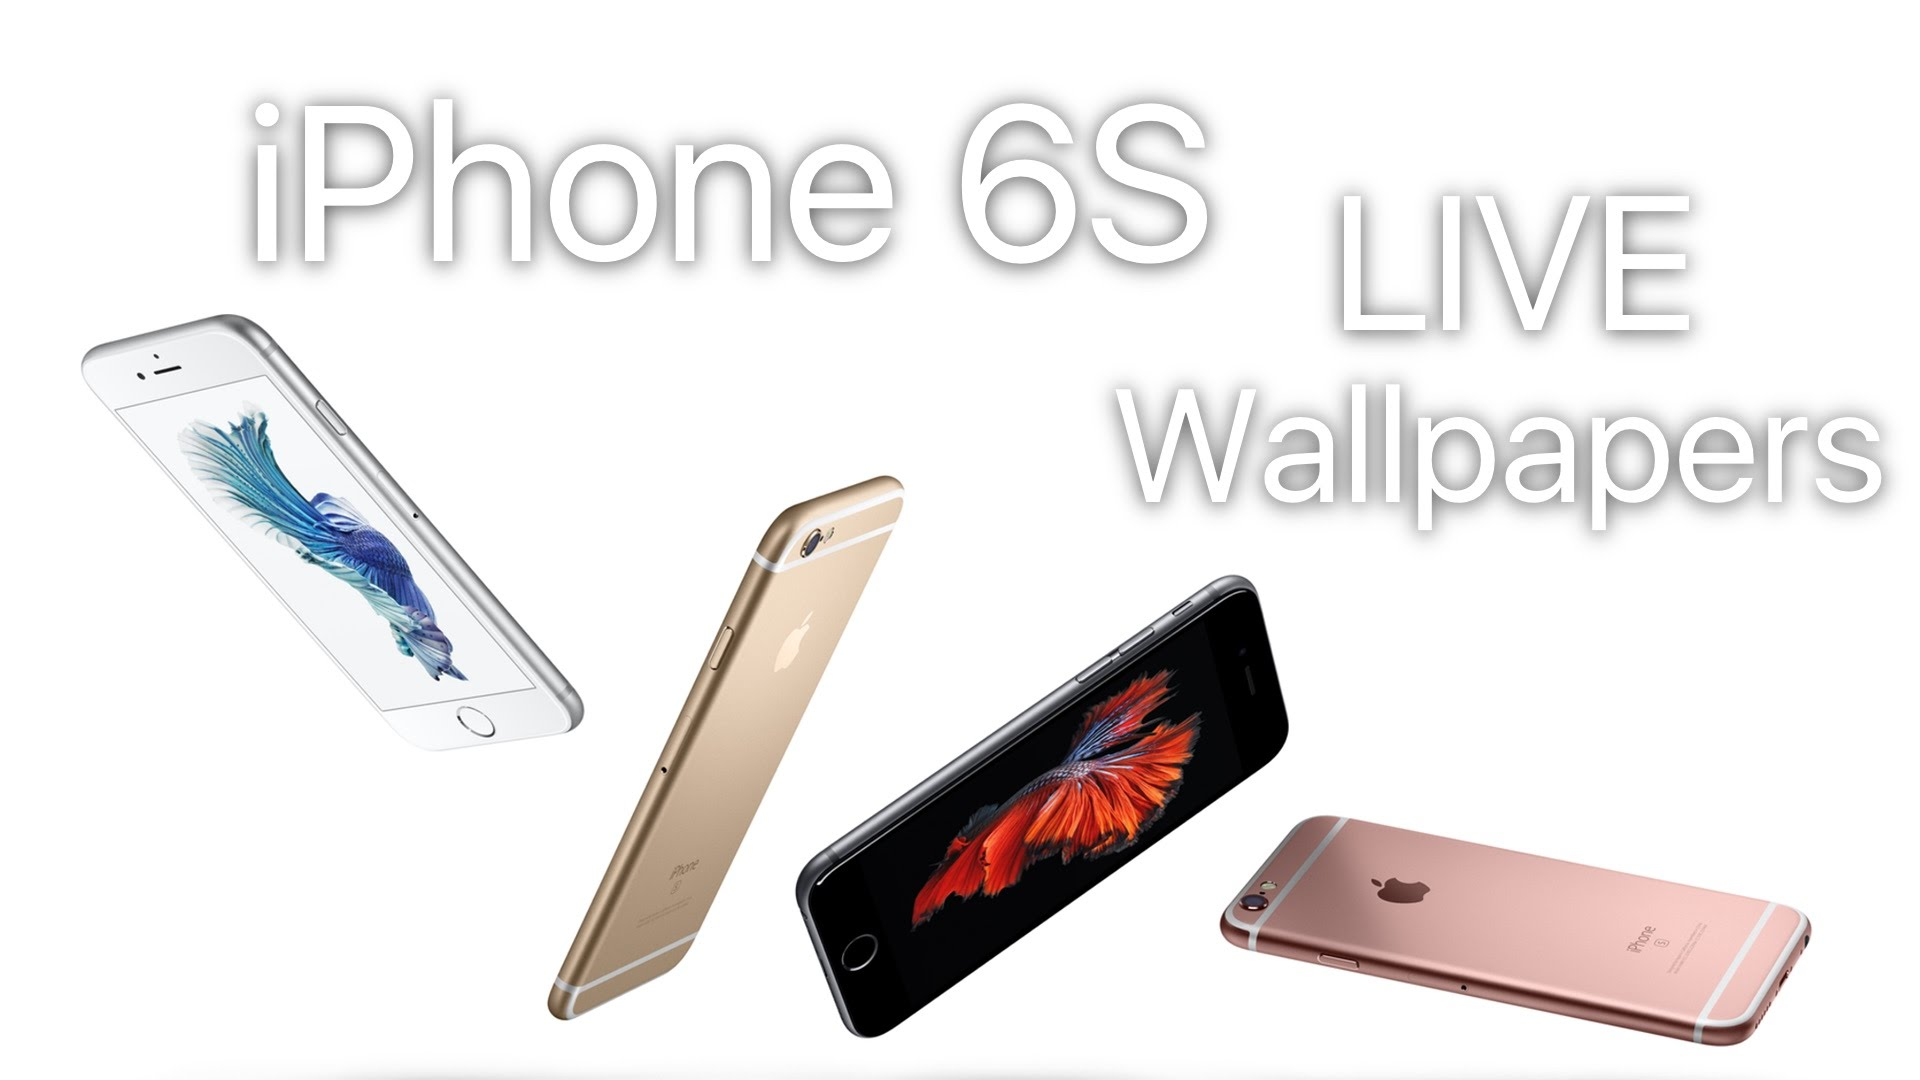 Get iPhone 6S LIVE WALLPAPERS on iOS 8 Devices - YouTube